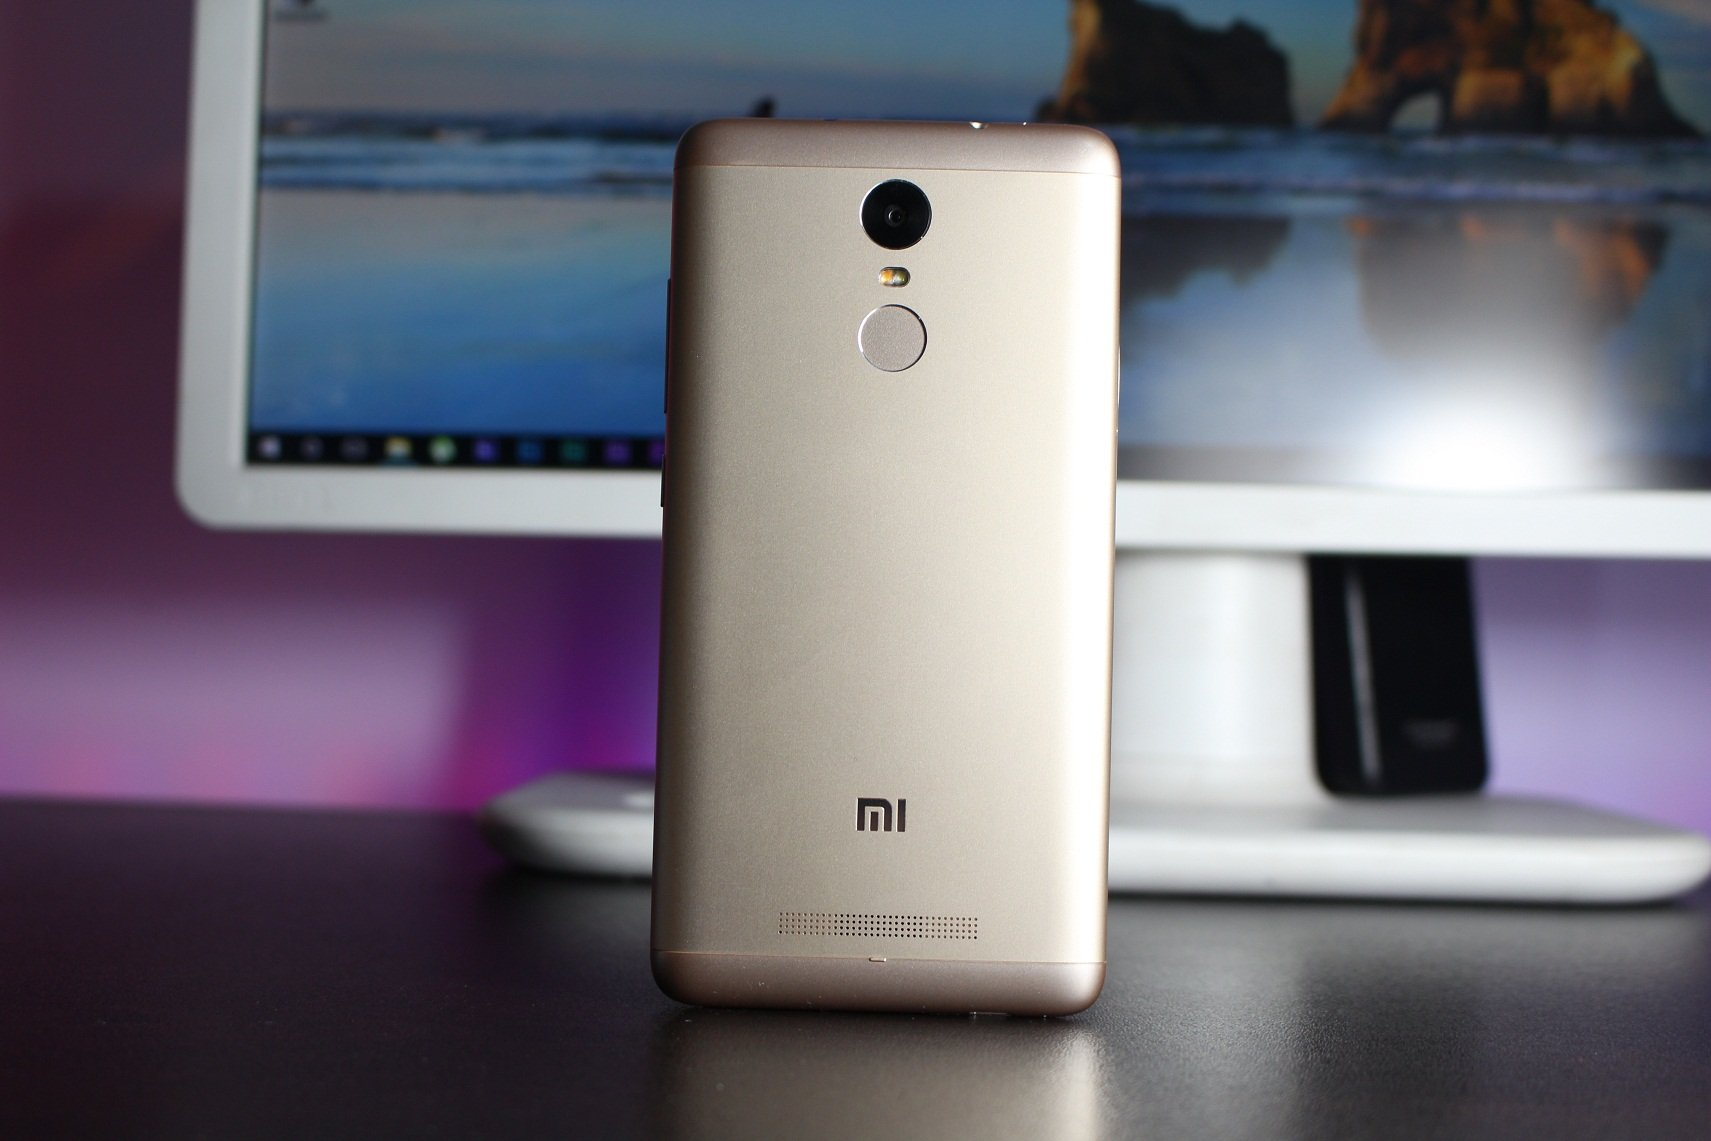 xiaomi redmi note 3 (8)